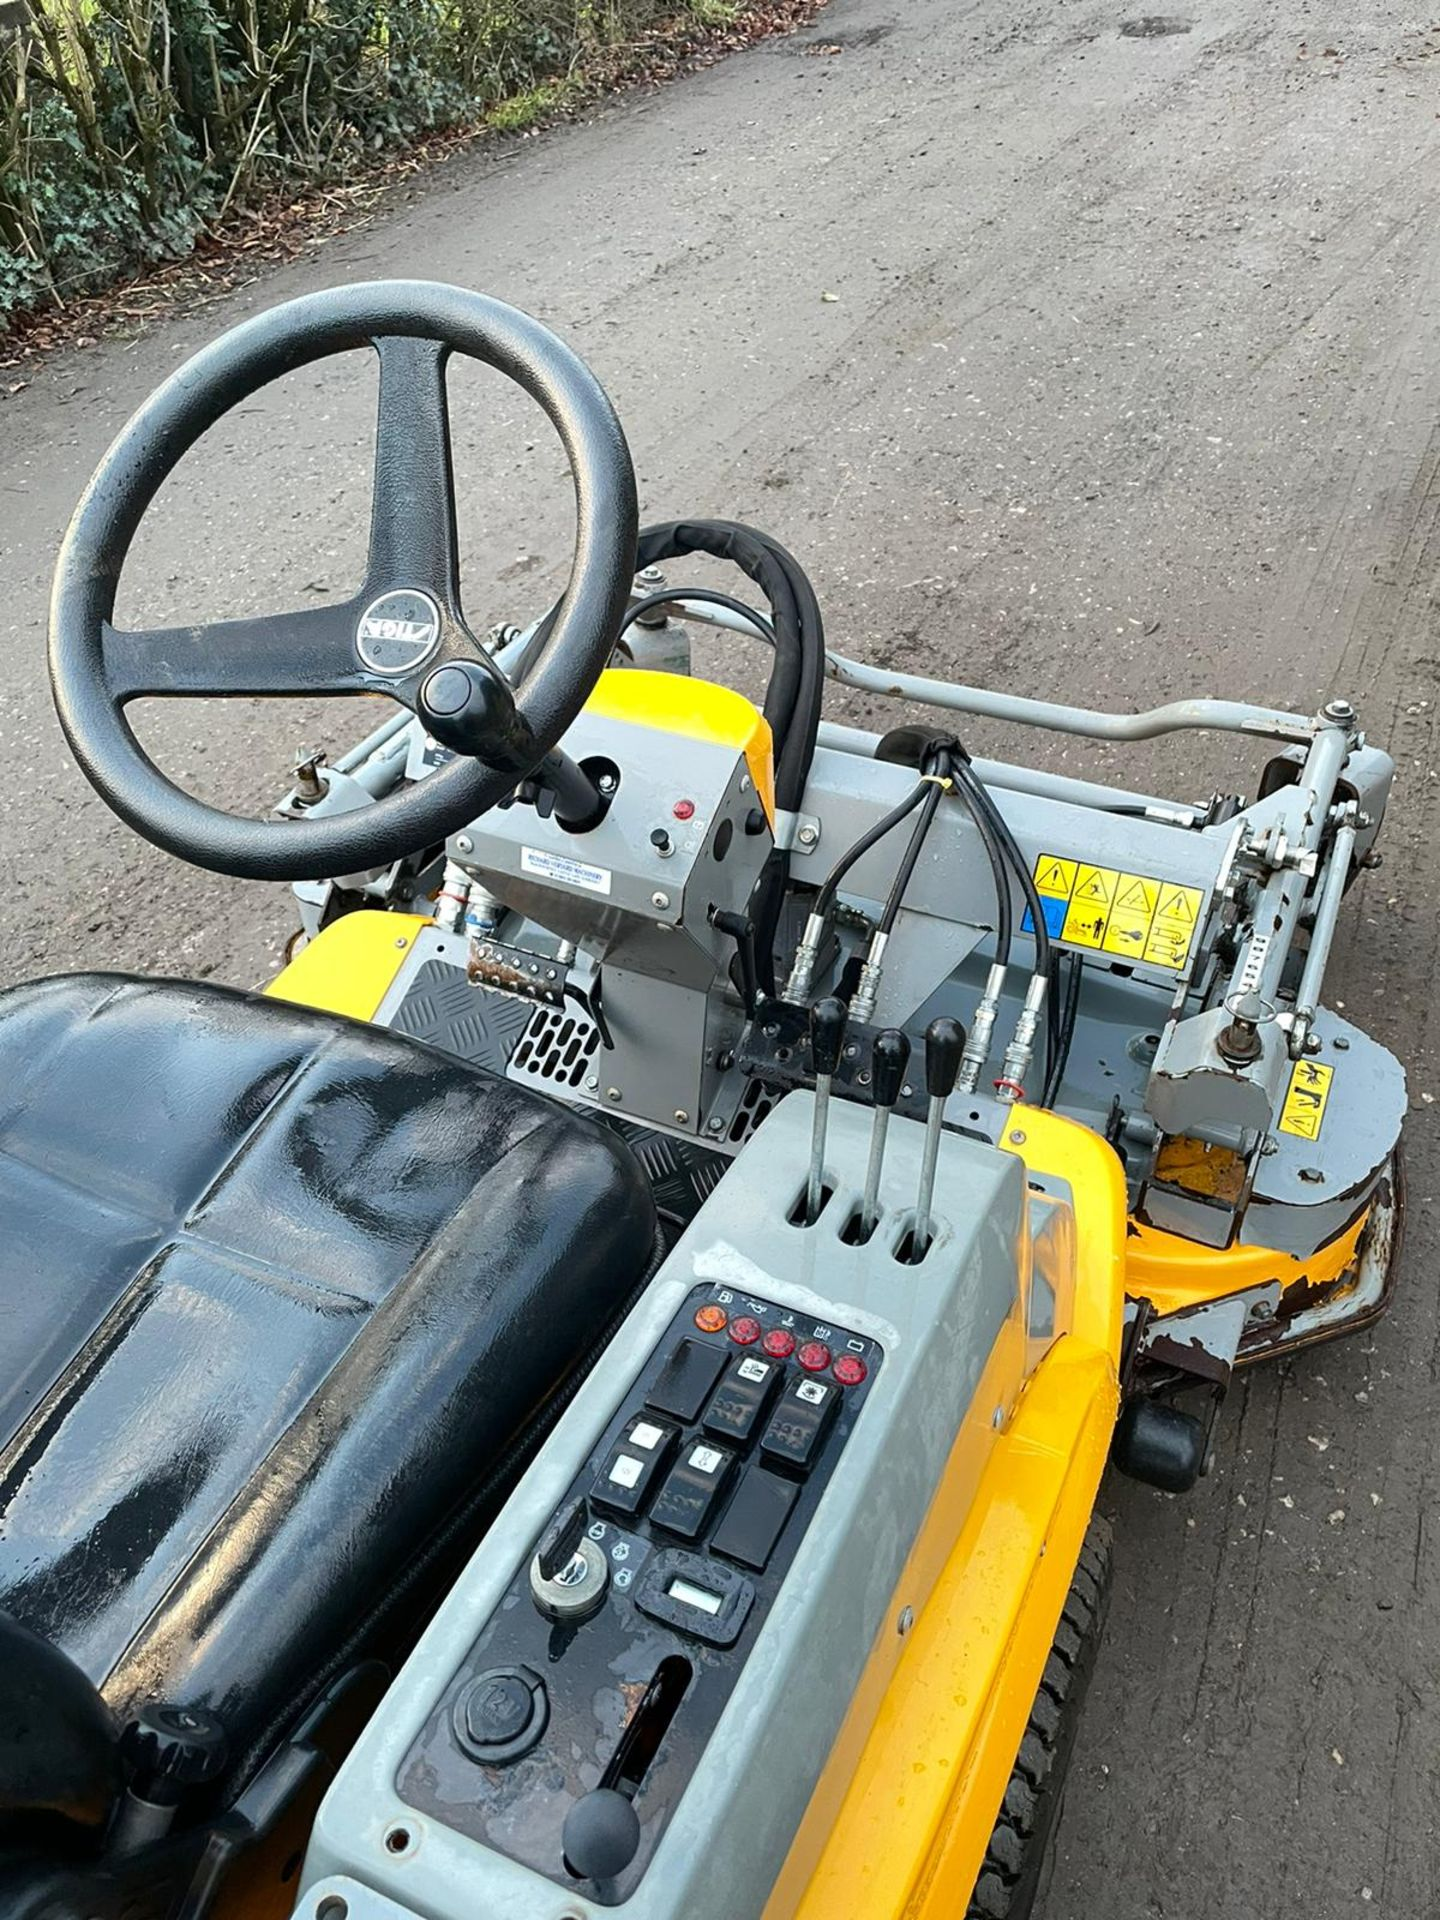 STIGA TITAN 26H RIDE ON LAWN MOWER, RUNS, DRIVES AND MOWS, FULL HYDRAULIC DECK, 650 HOURS *PLUS VAT* - Image 6 of 6